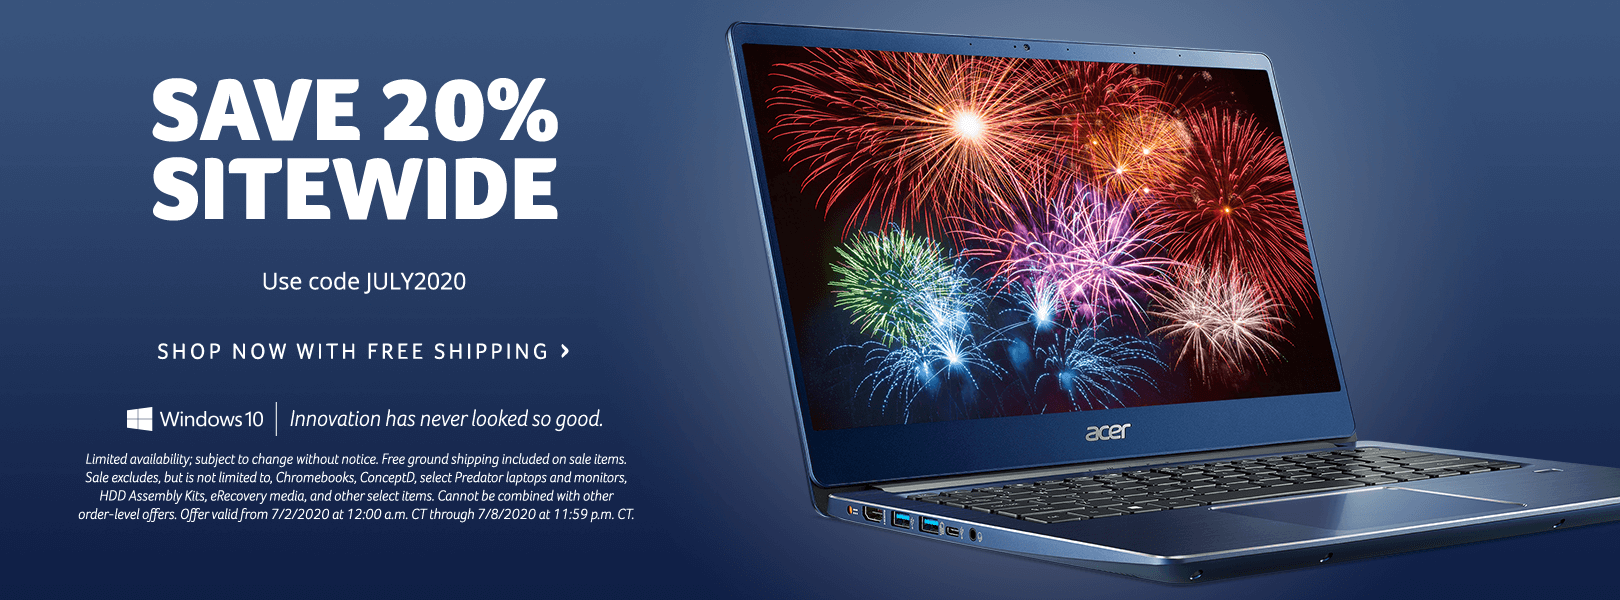 Save 20% Sitewide during the Acer Fourth of July Sale with promo code JULY2020.